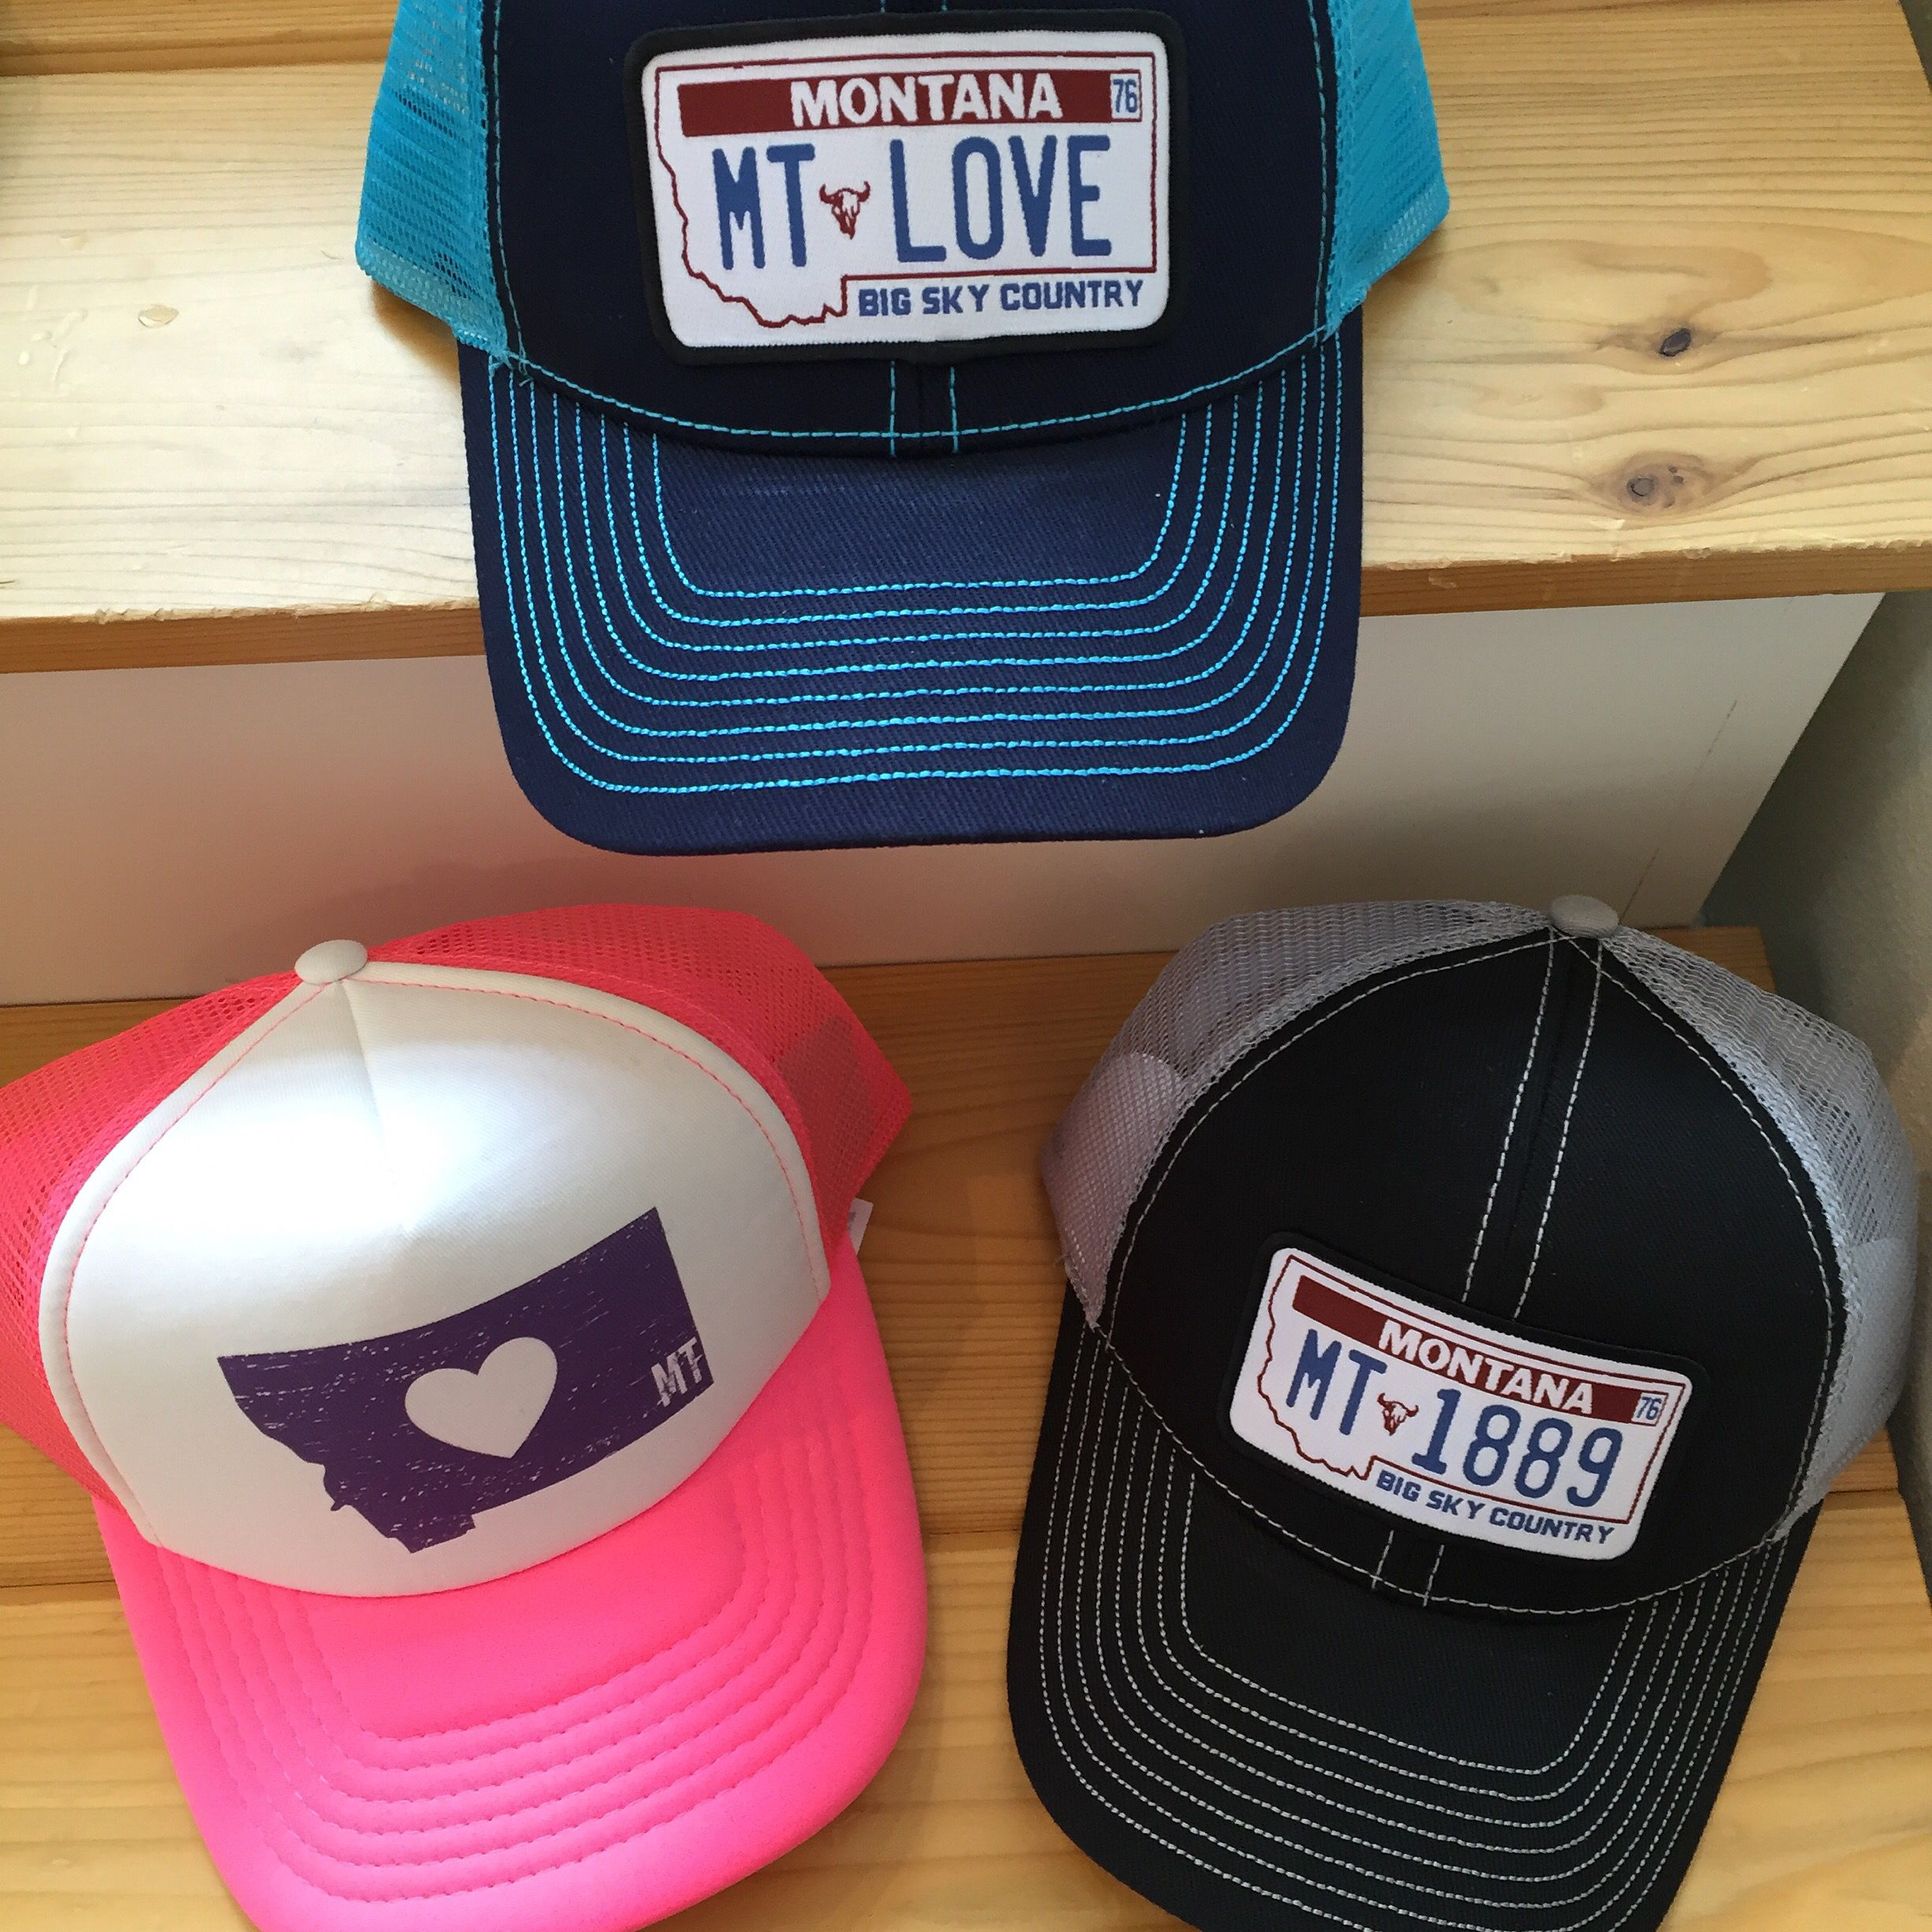 Montana hats | Accessories | Pinterest | Big sky country